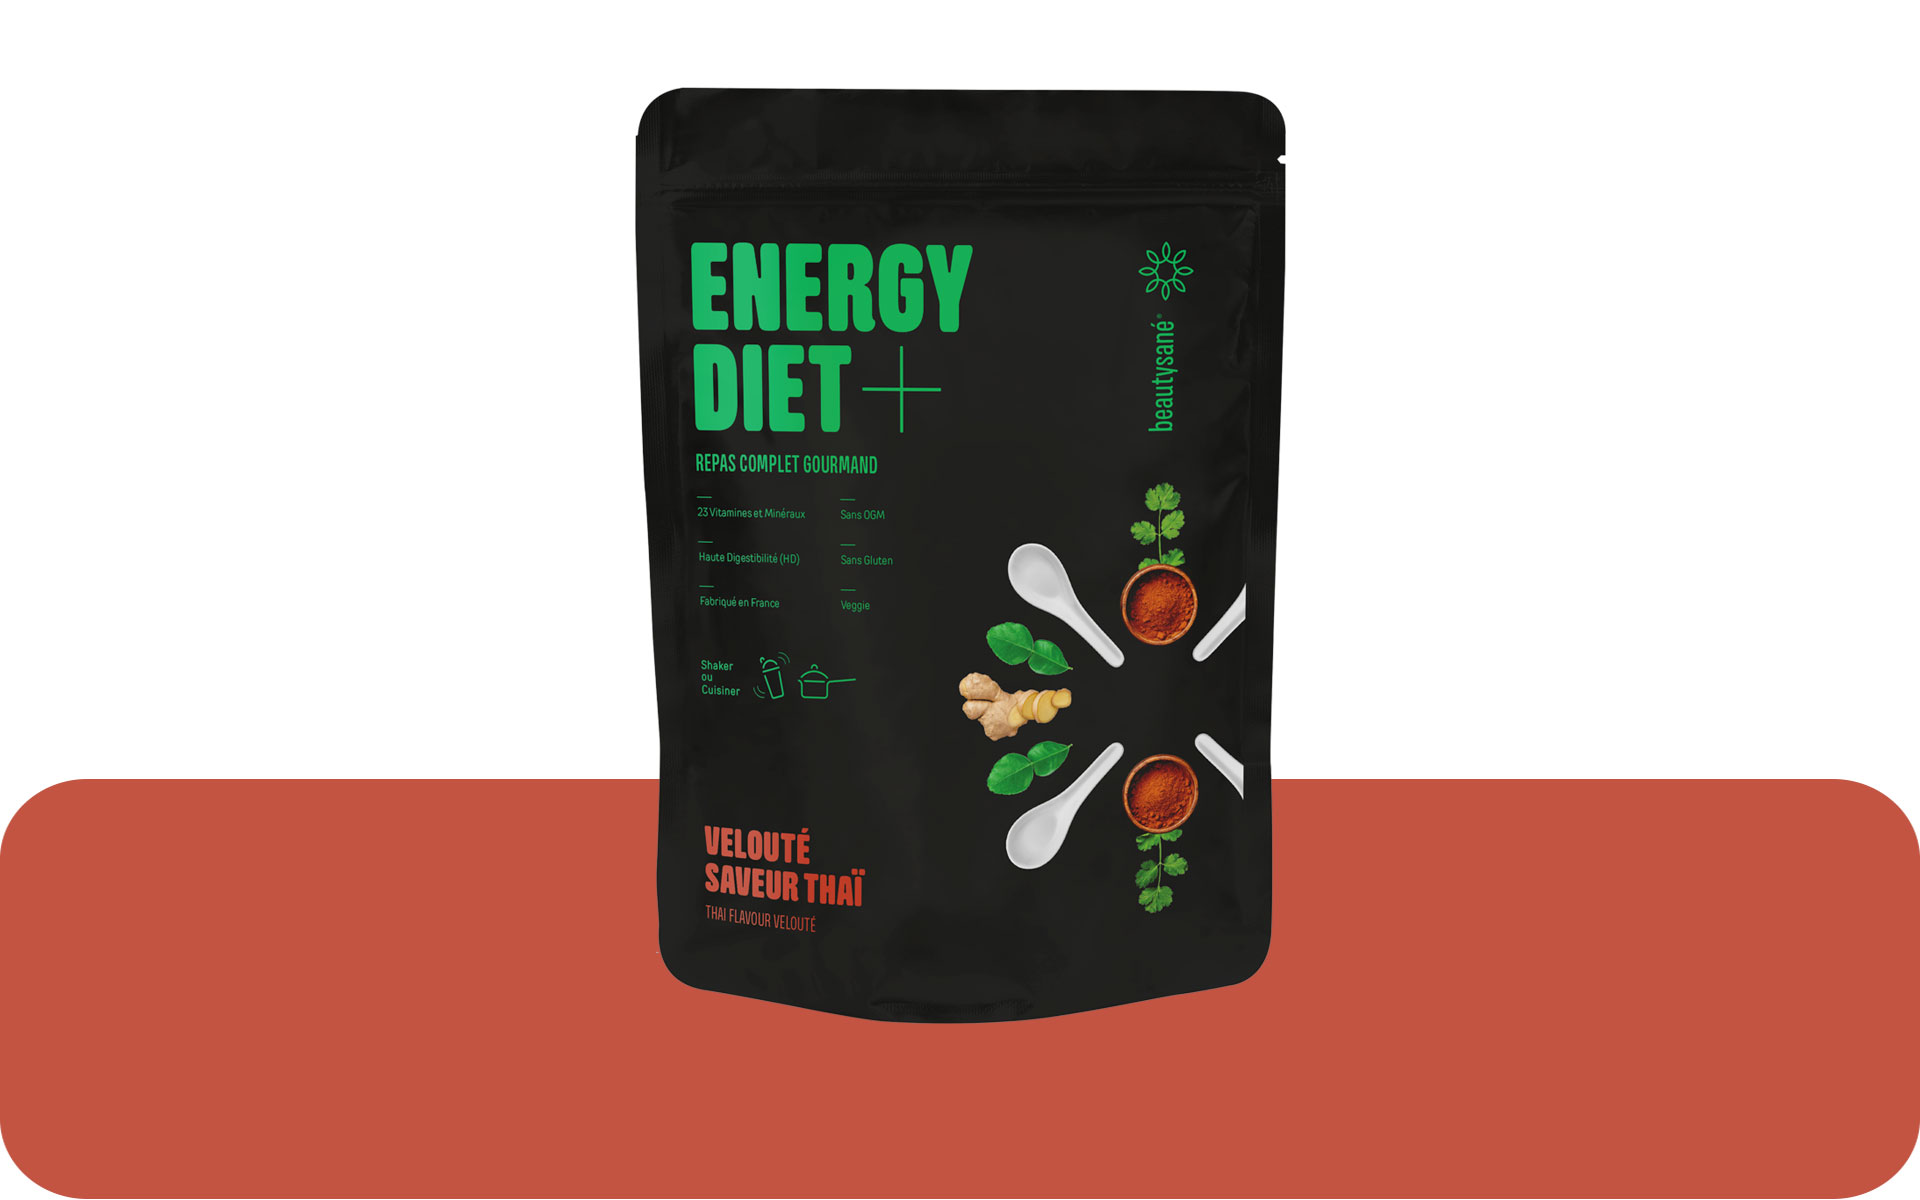 Energy Diet Plus sabor thai